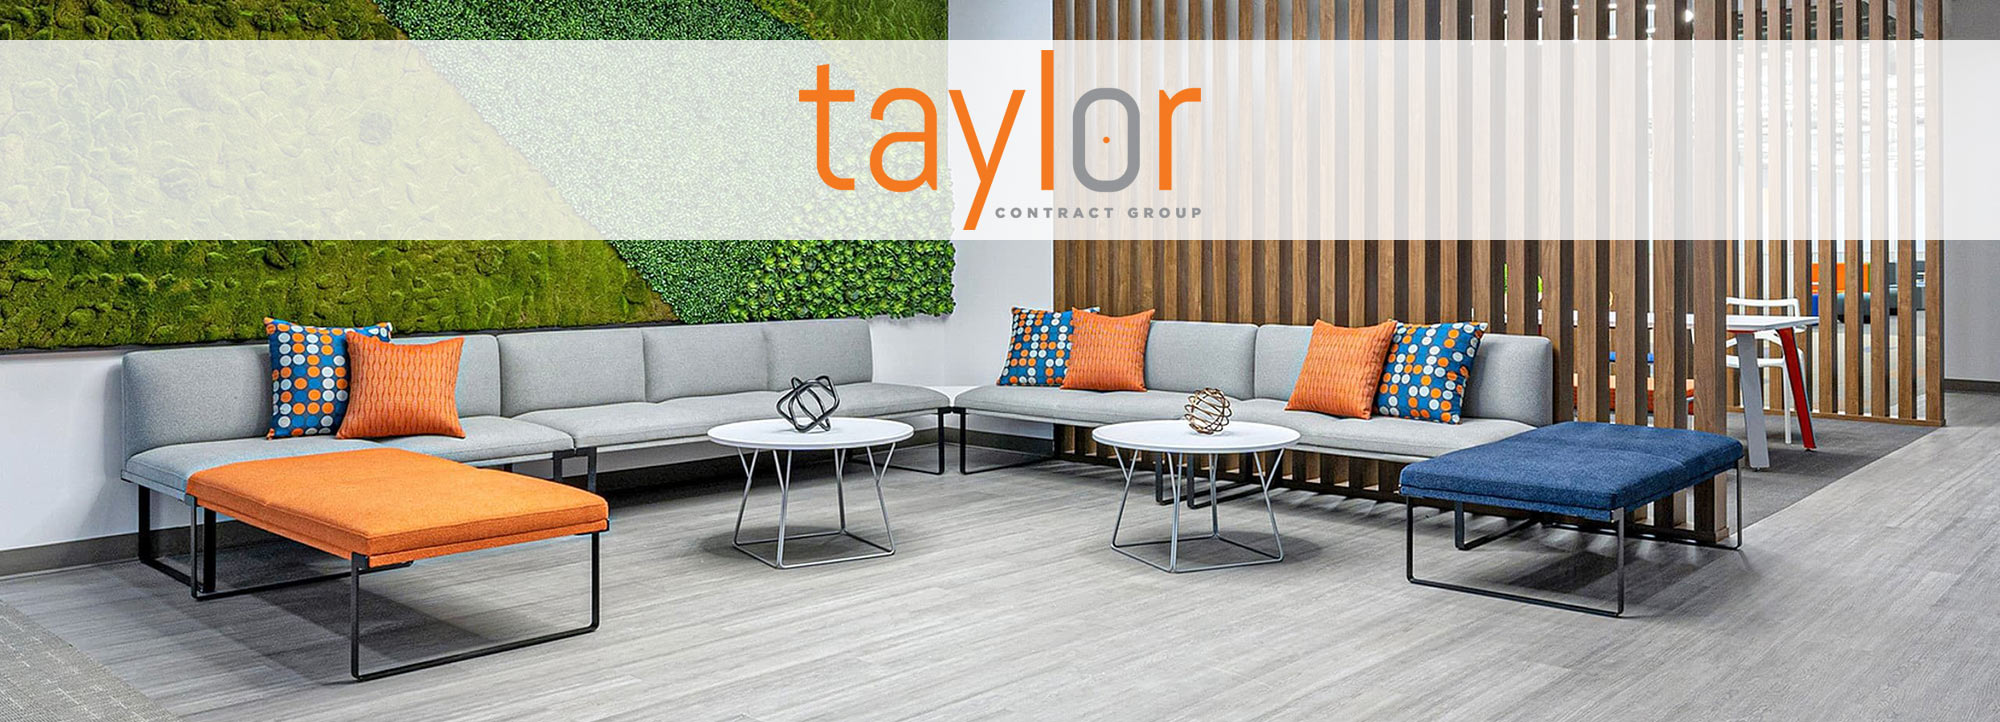 Taylor Contract Group